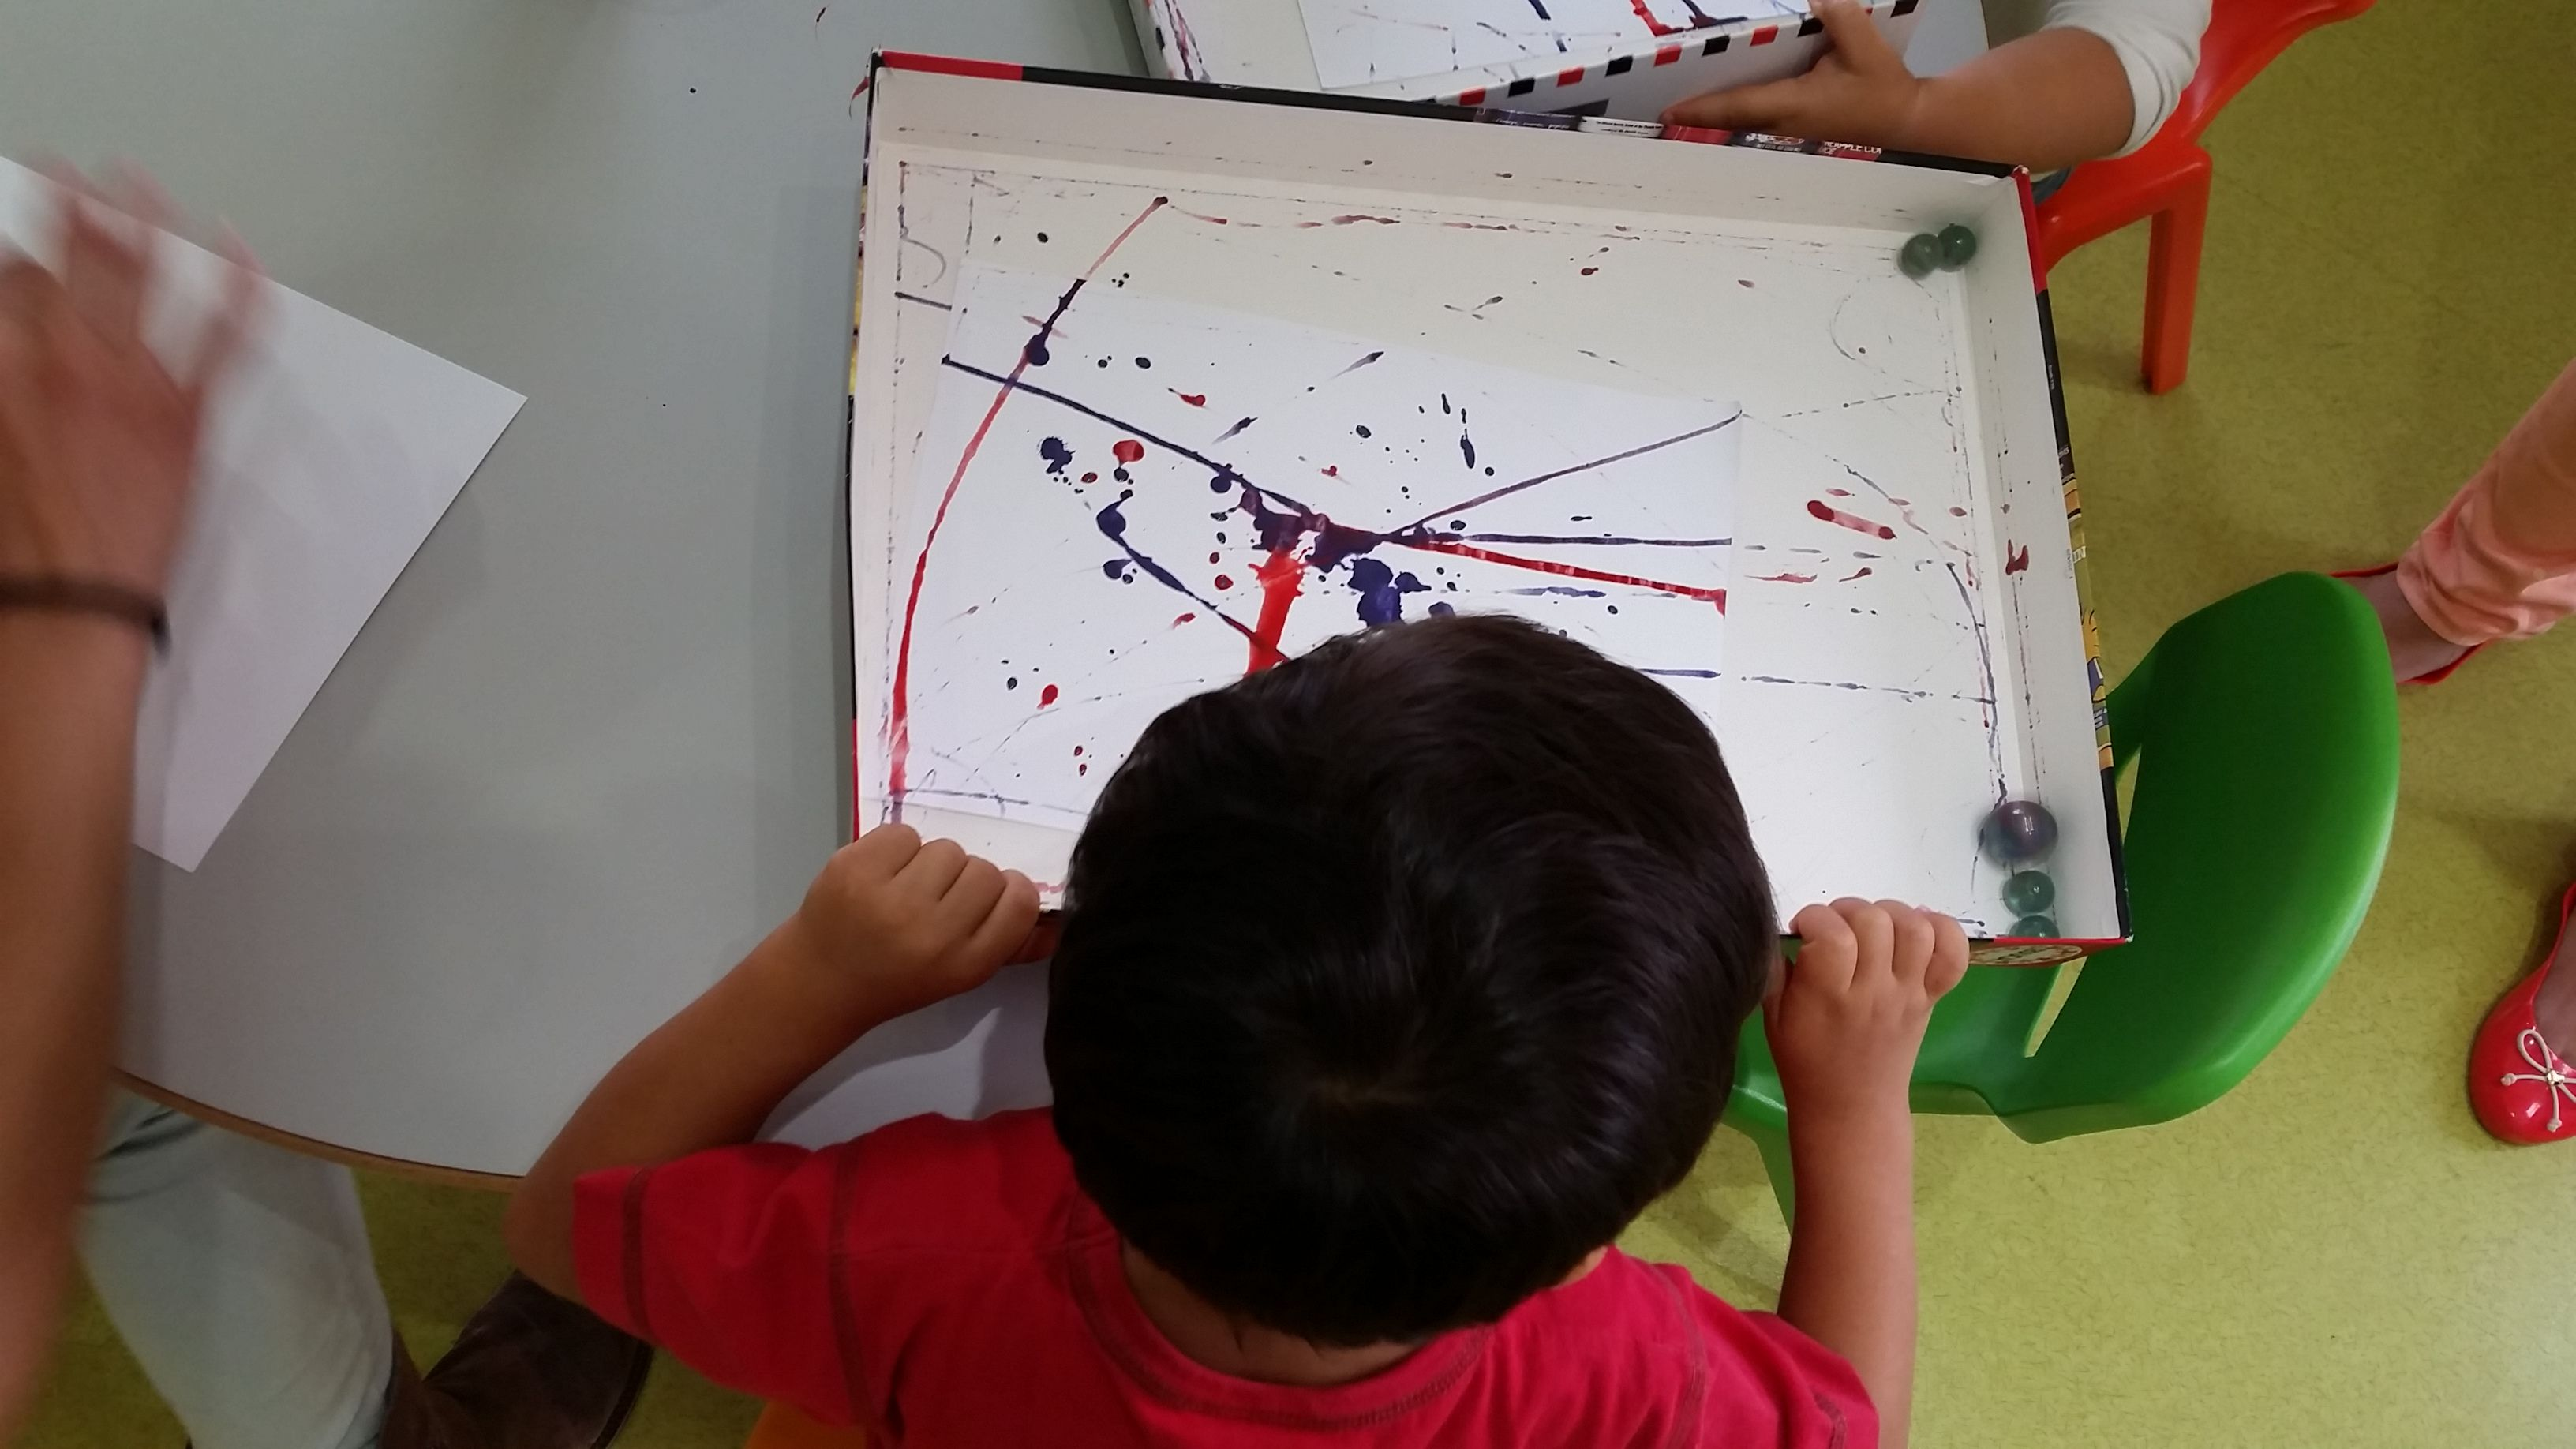 Pintura com berlindes - Painting with marbles